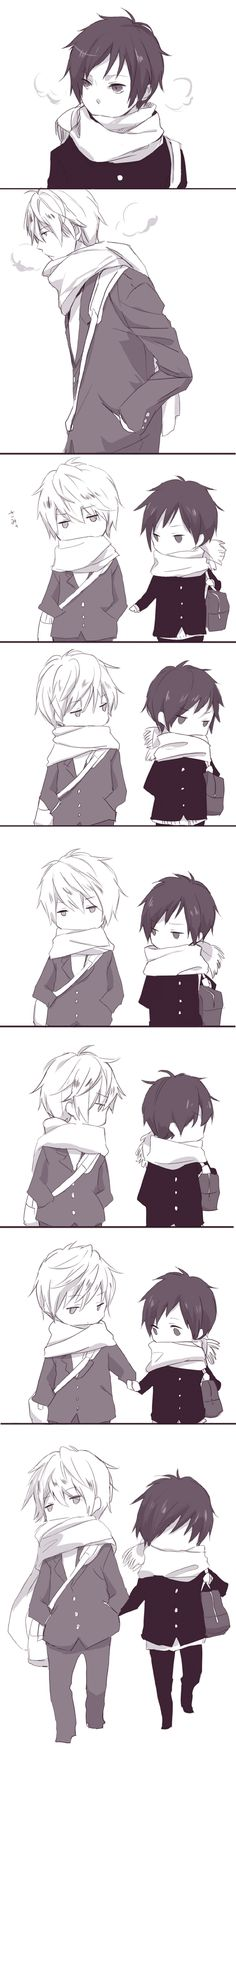 Geez.....Shizuo and Izaya is just so cute.........